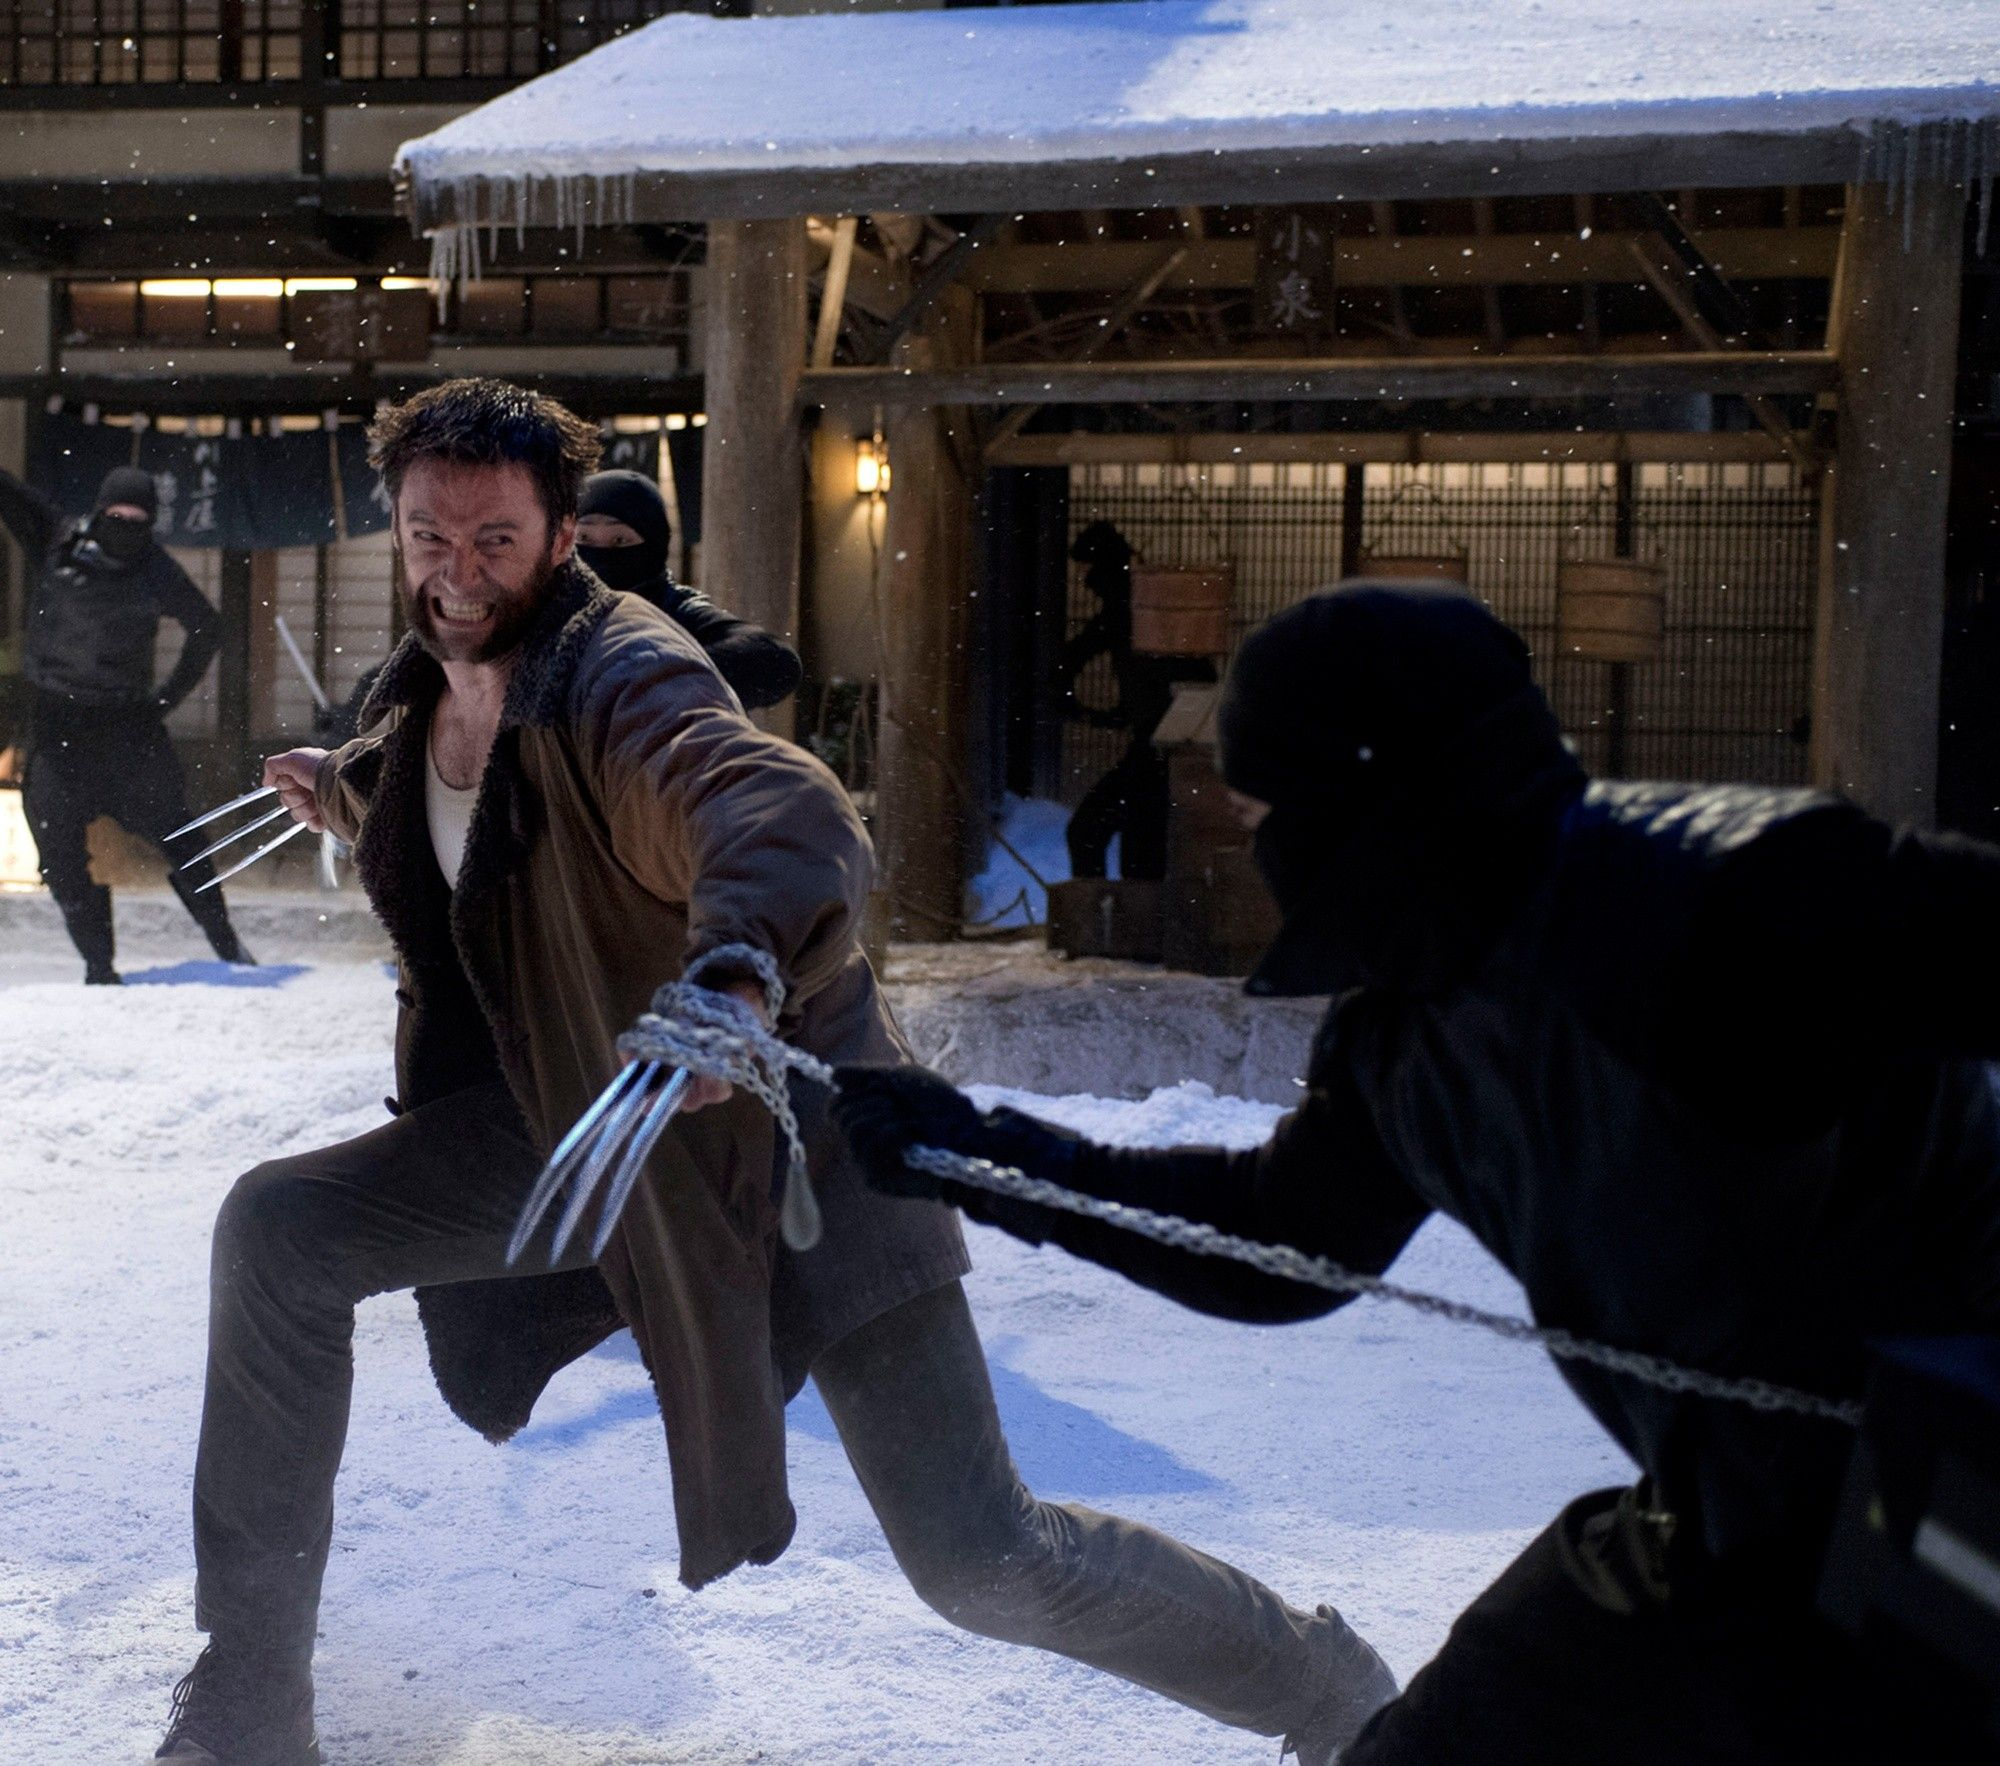 Wolverine (High Jackman) vs ninja in The Wolverine (2013)